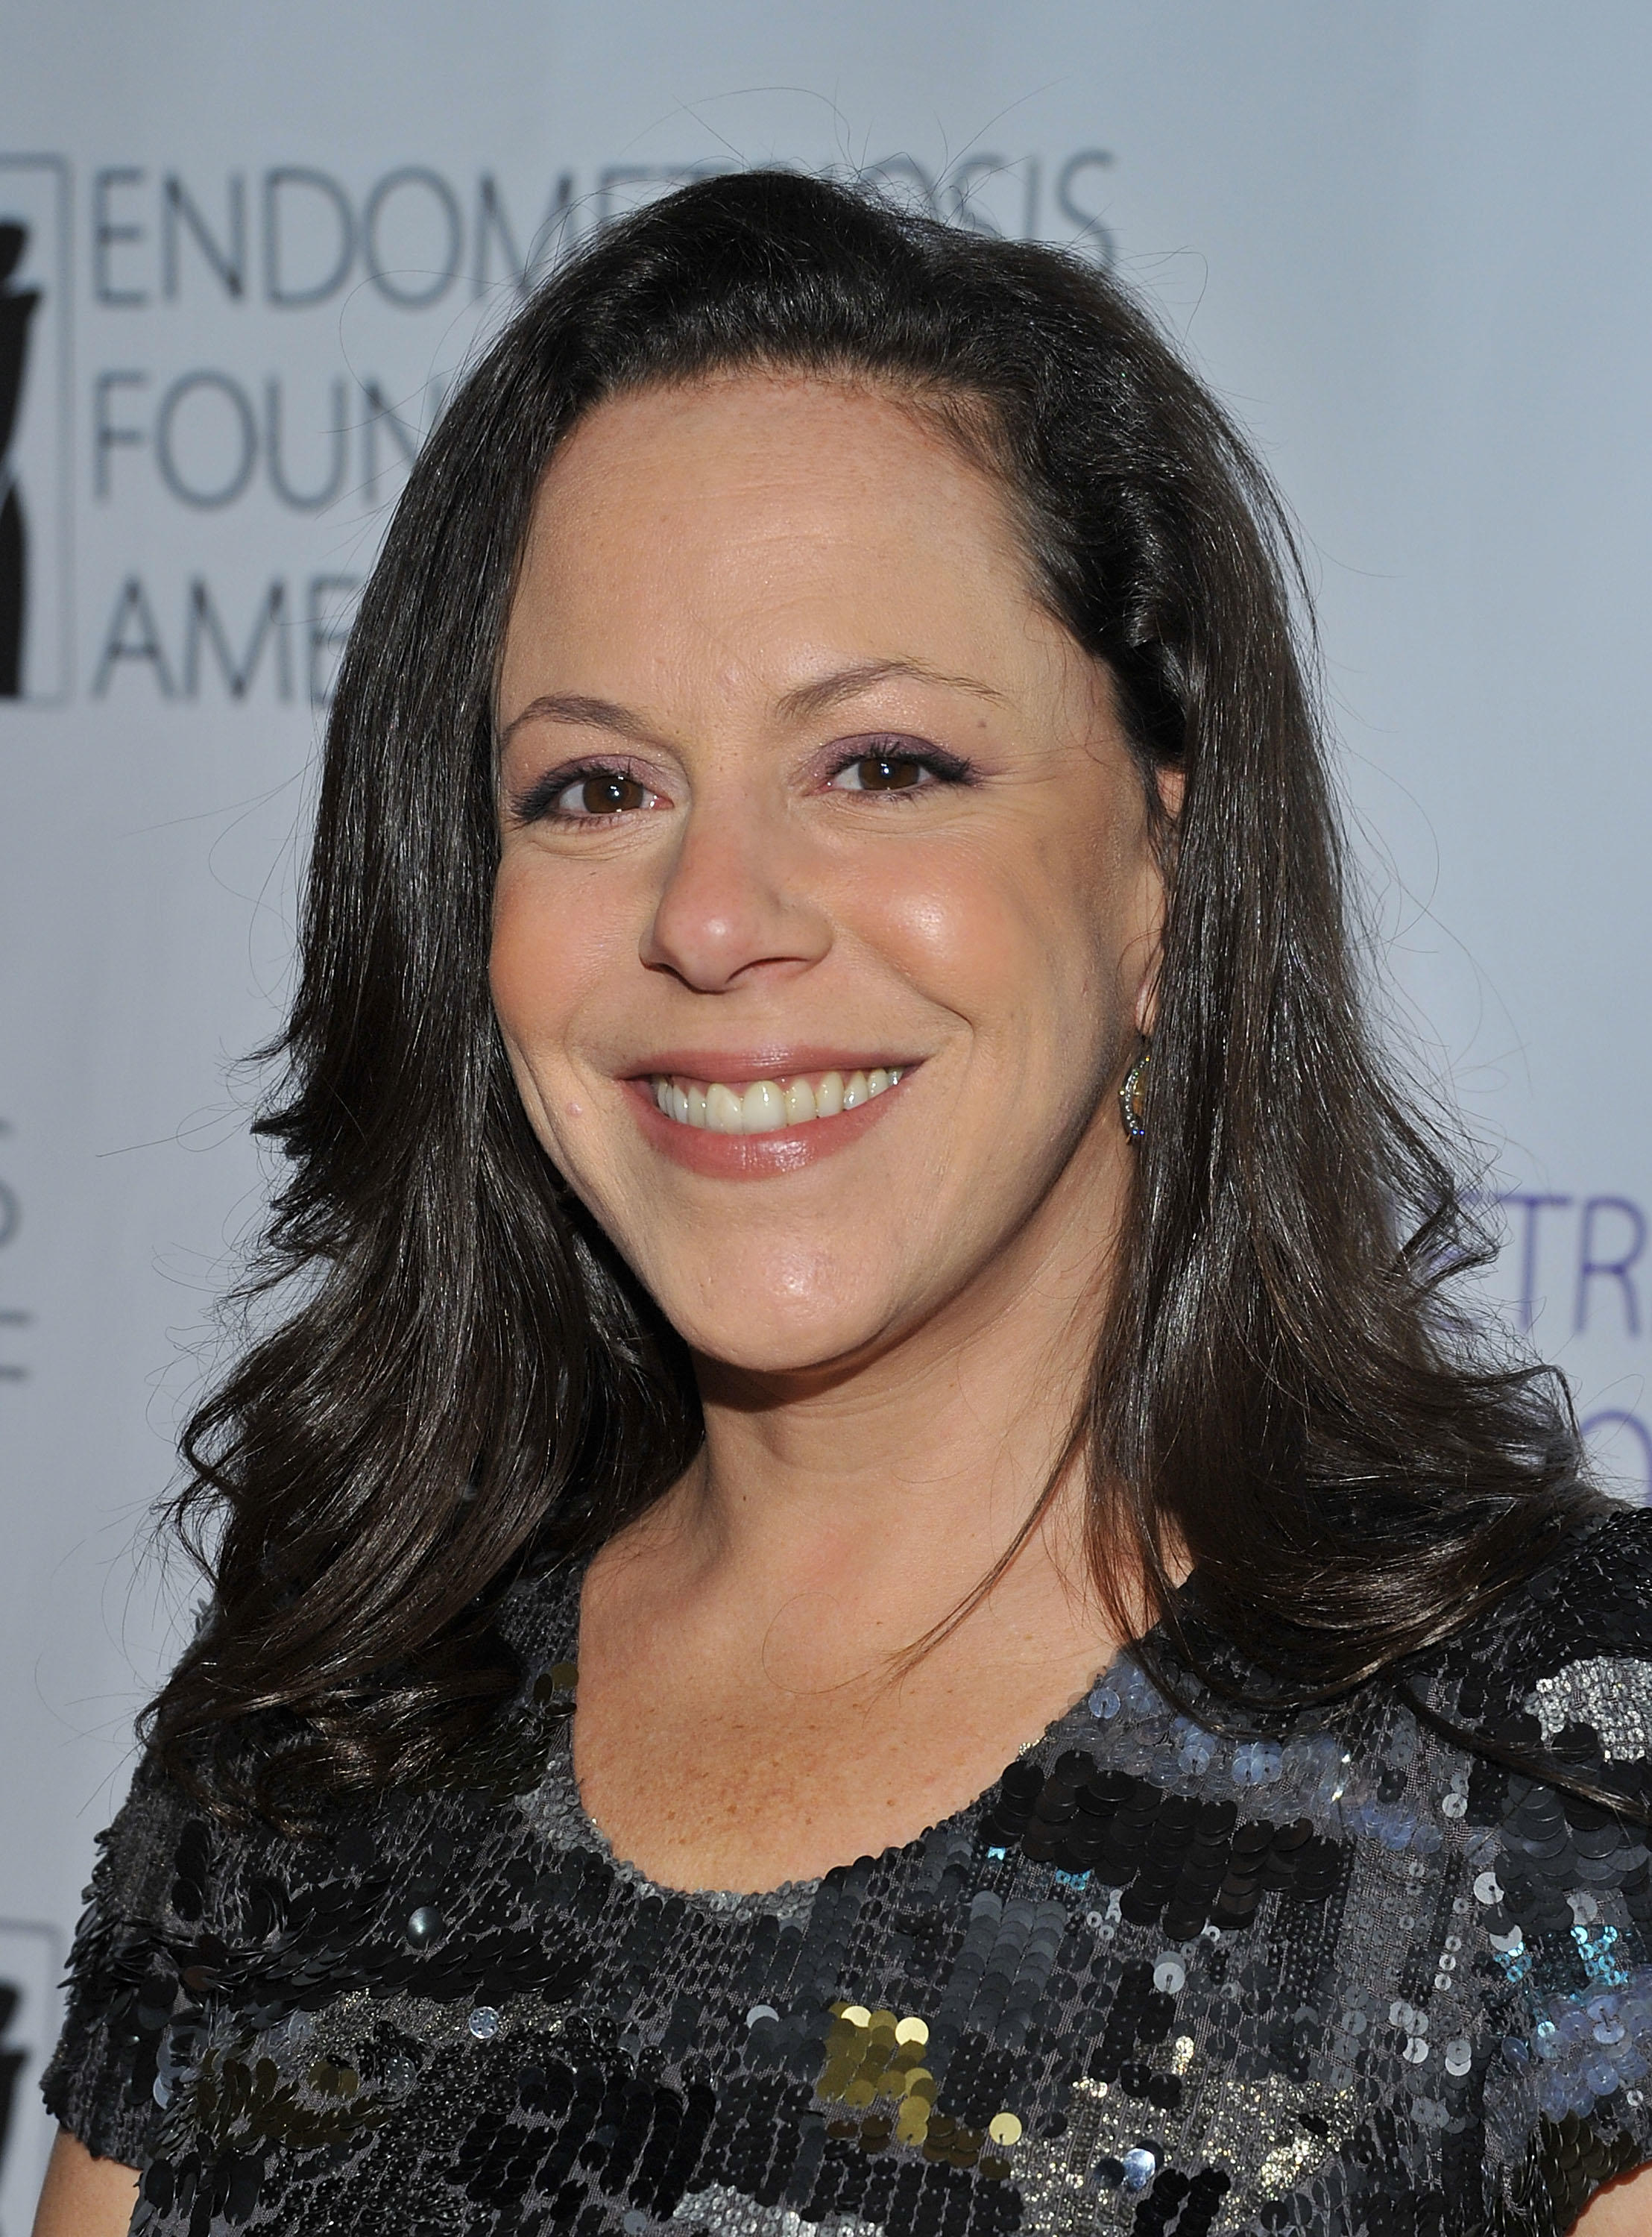 Bebel Gilberto at the Endometriosis Foundation of America's 3rd Annual Blossom Ball at the New York Public Library in New York City, NY.